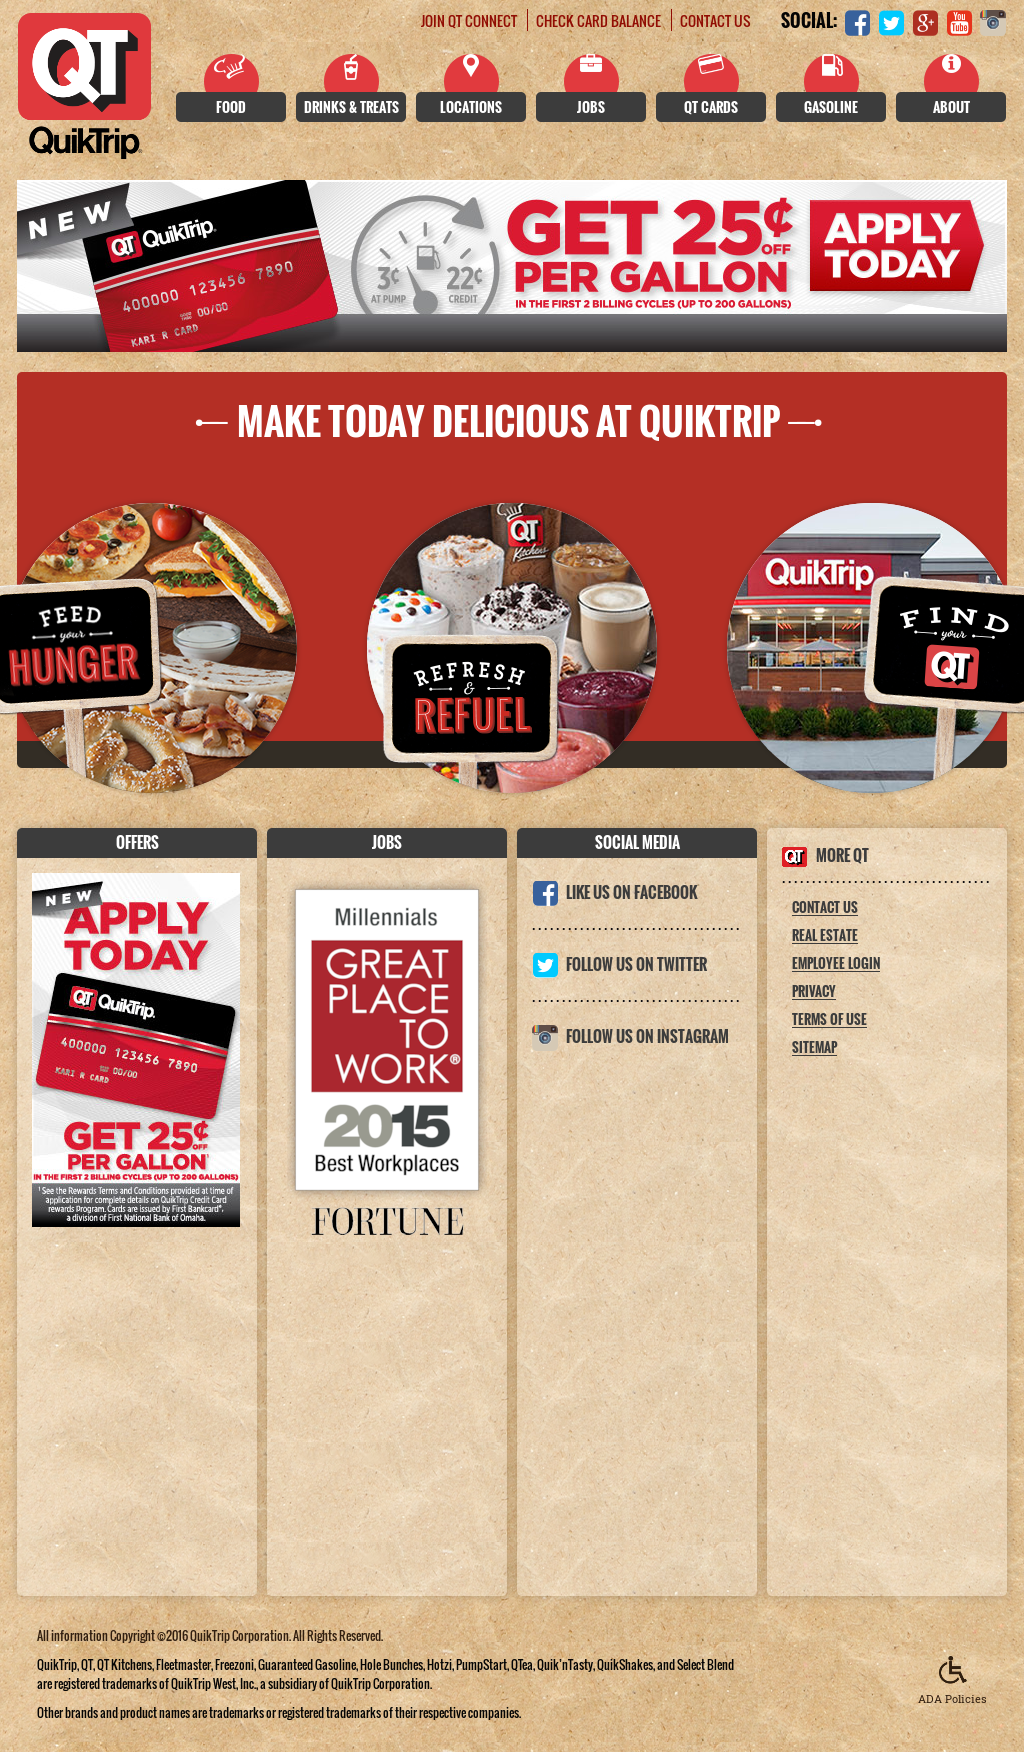 QuikTrip Competitors, Revenue and Employees - Owler Company